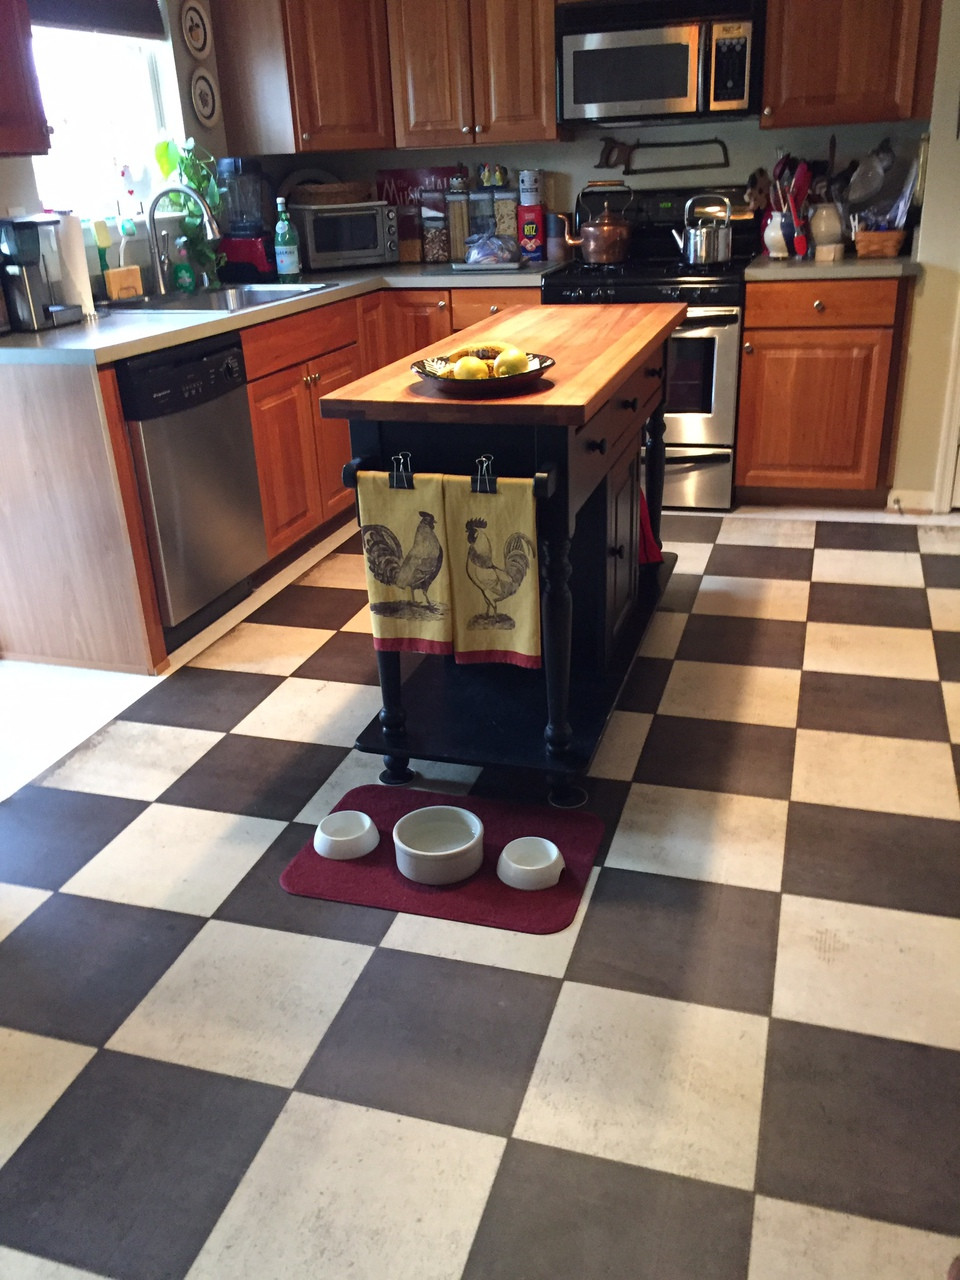 Pura Vida customer use of checkered past vinyl floor cloth